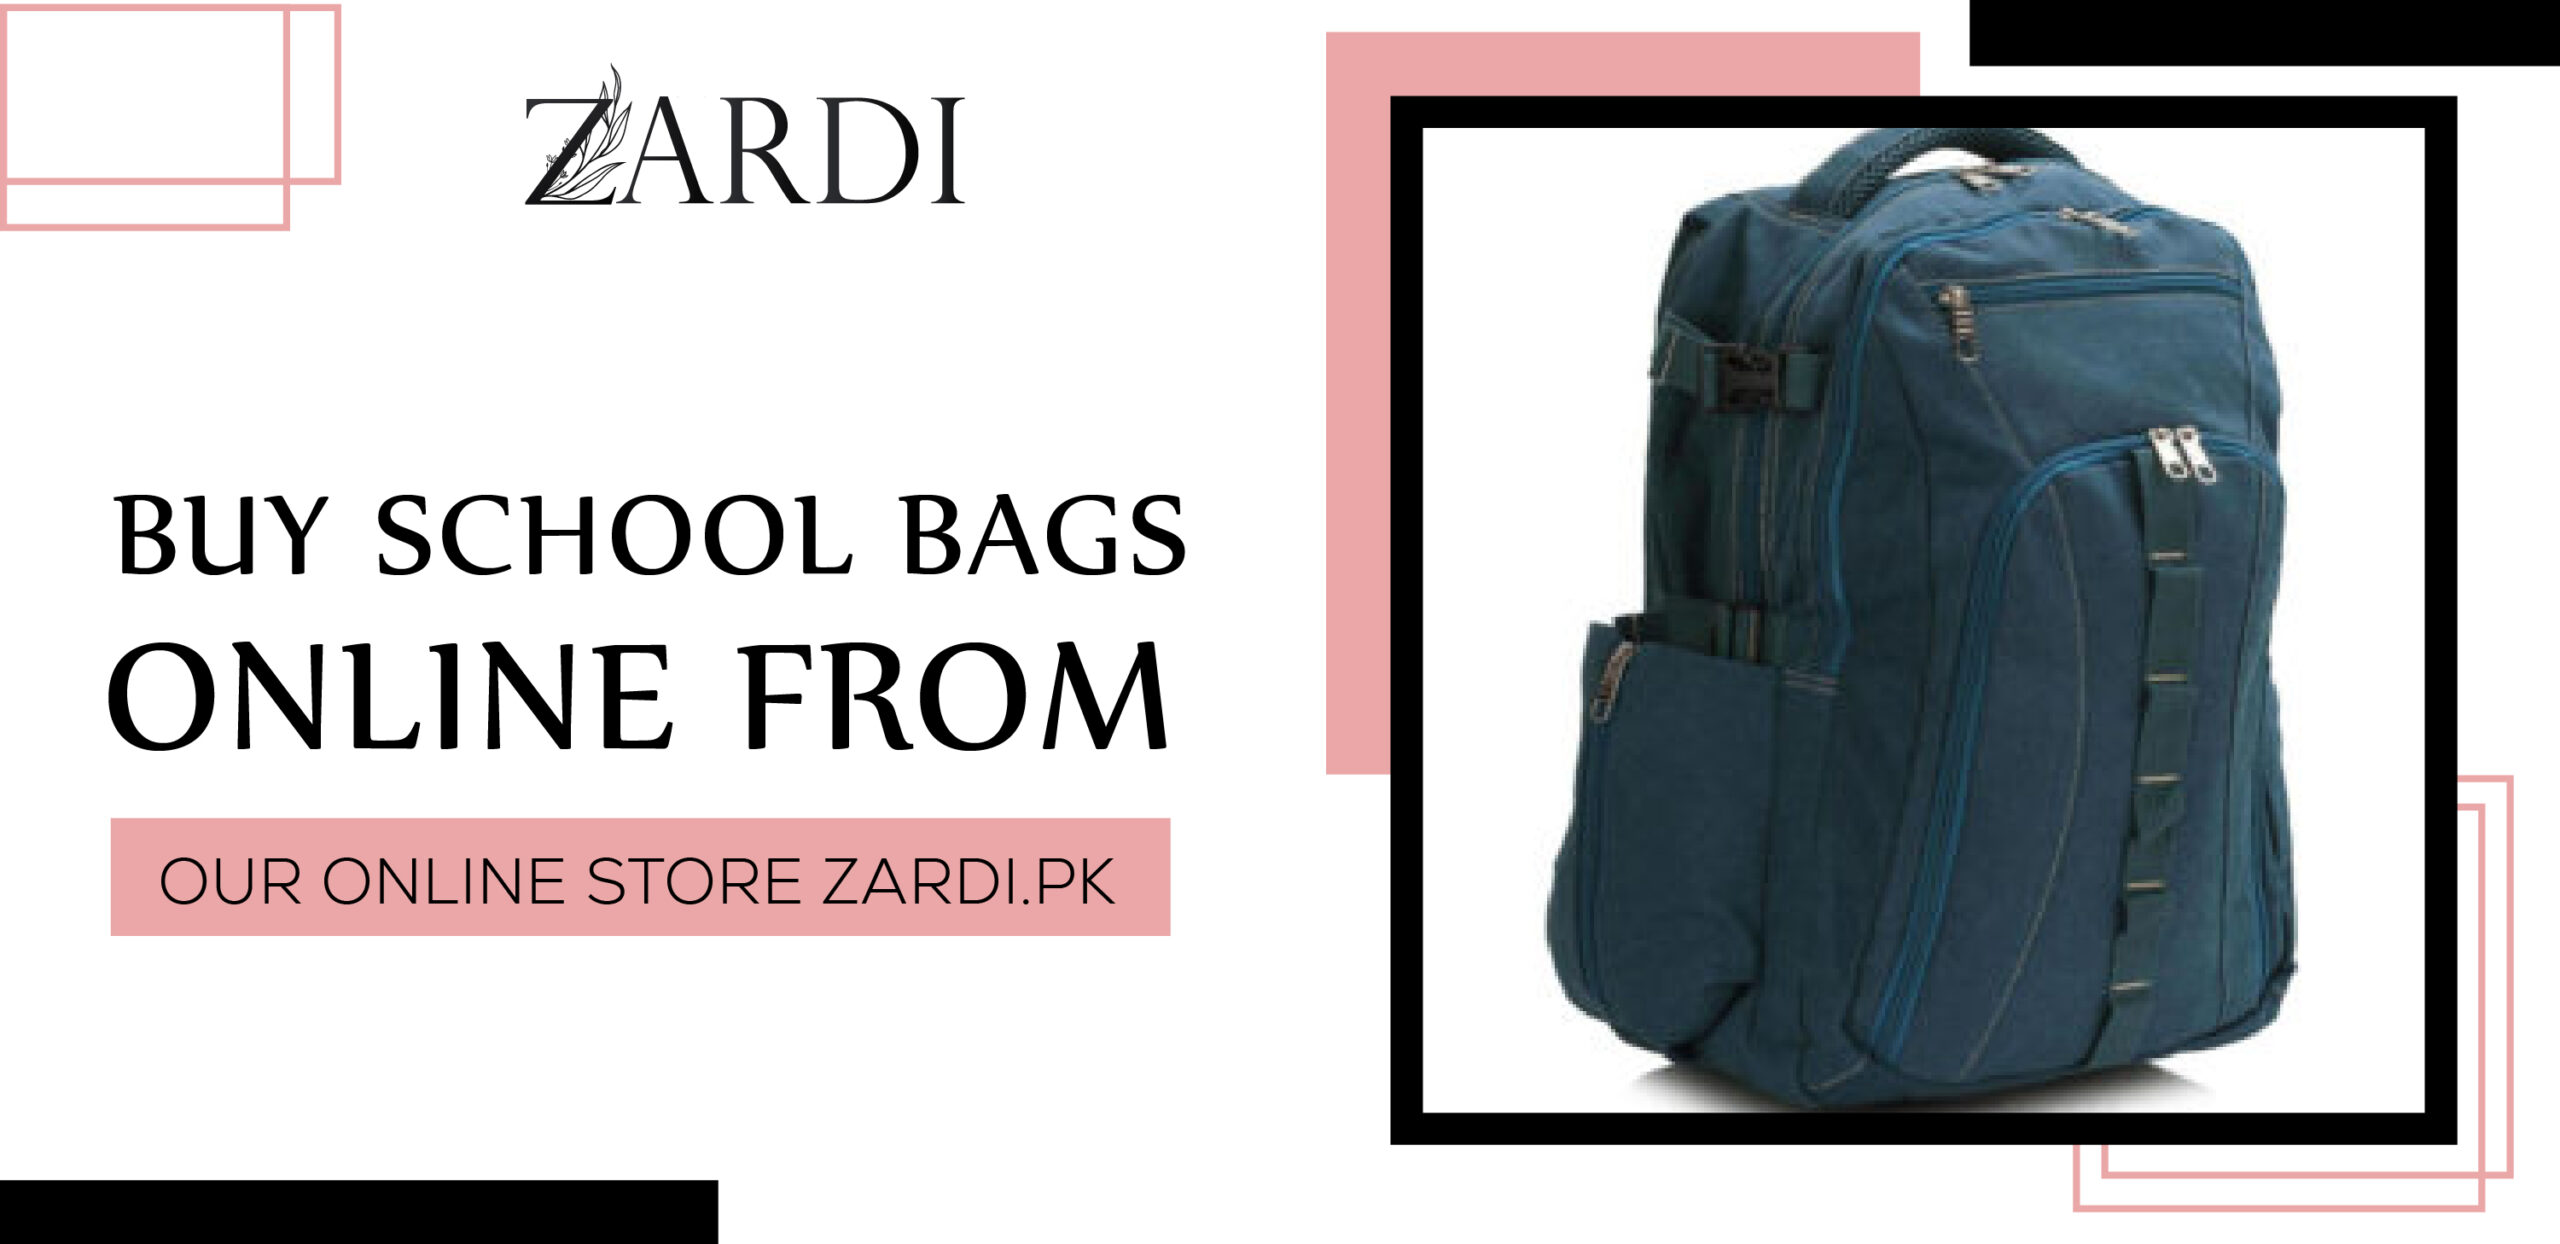 Buy School Bags Online From Our Online Store Zardi.pk